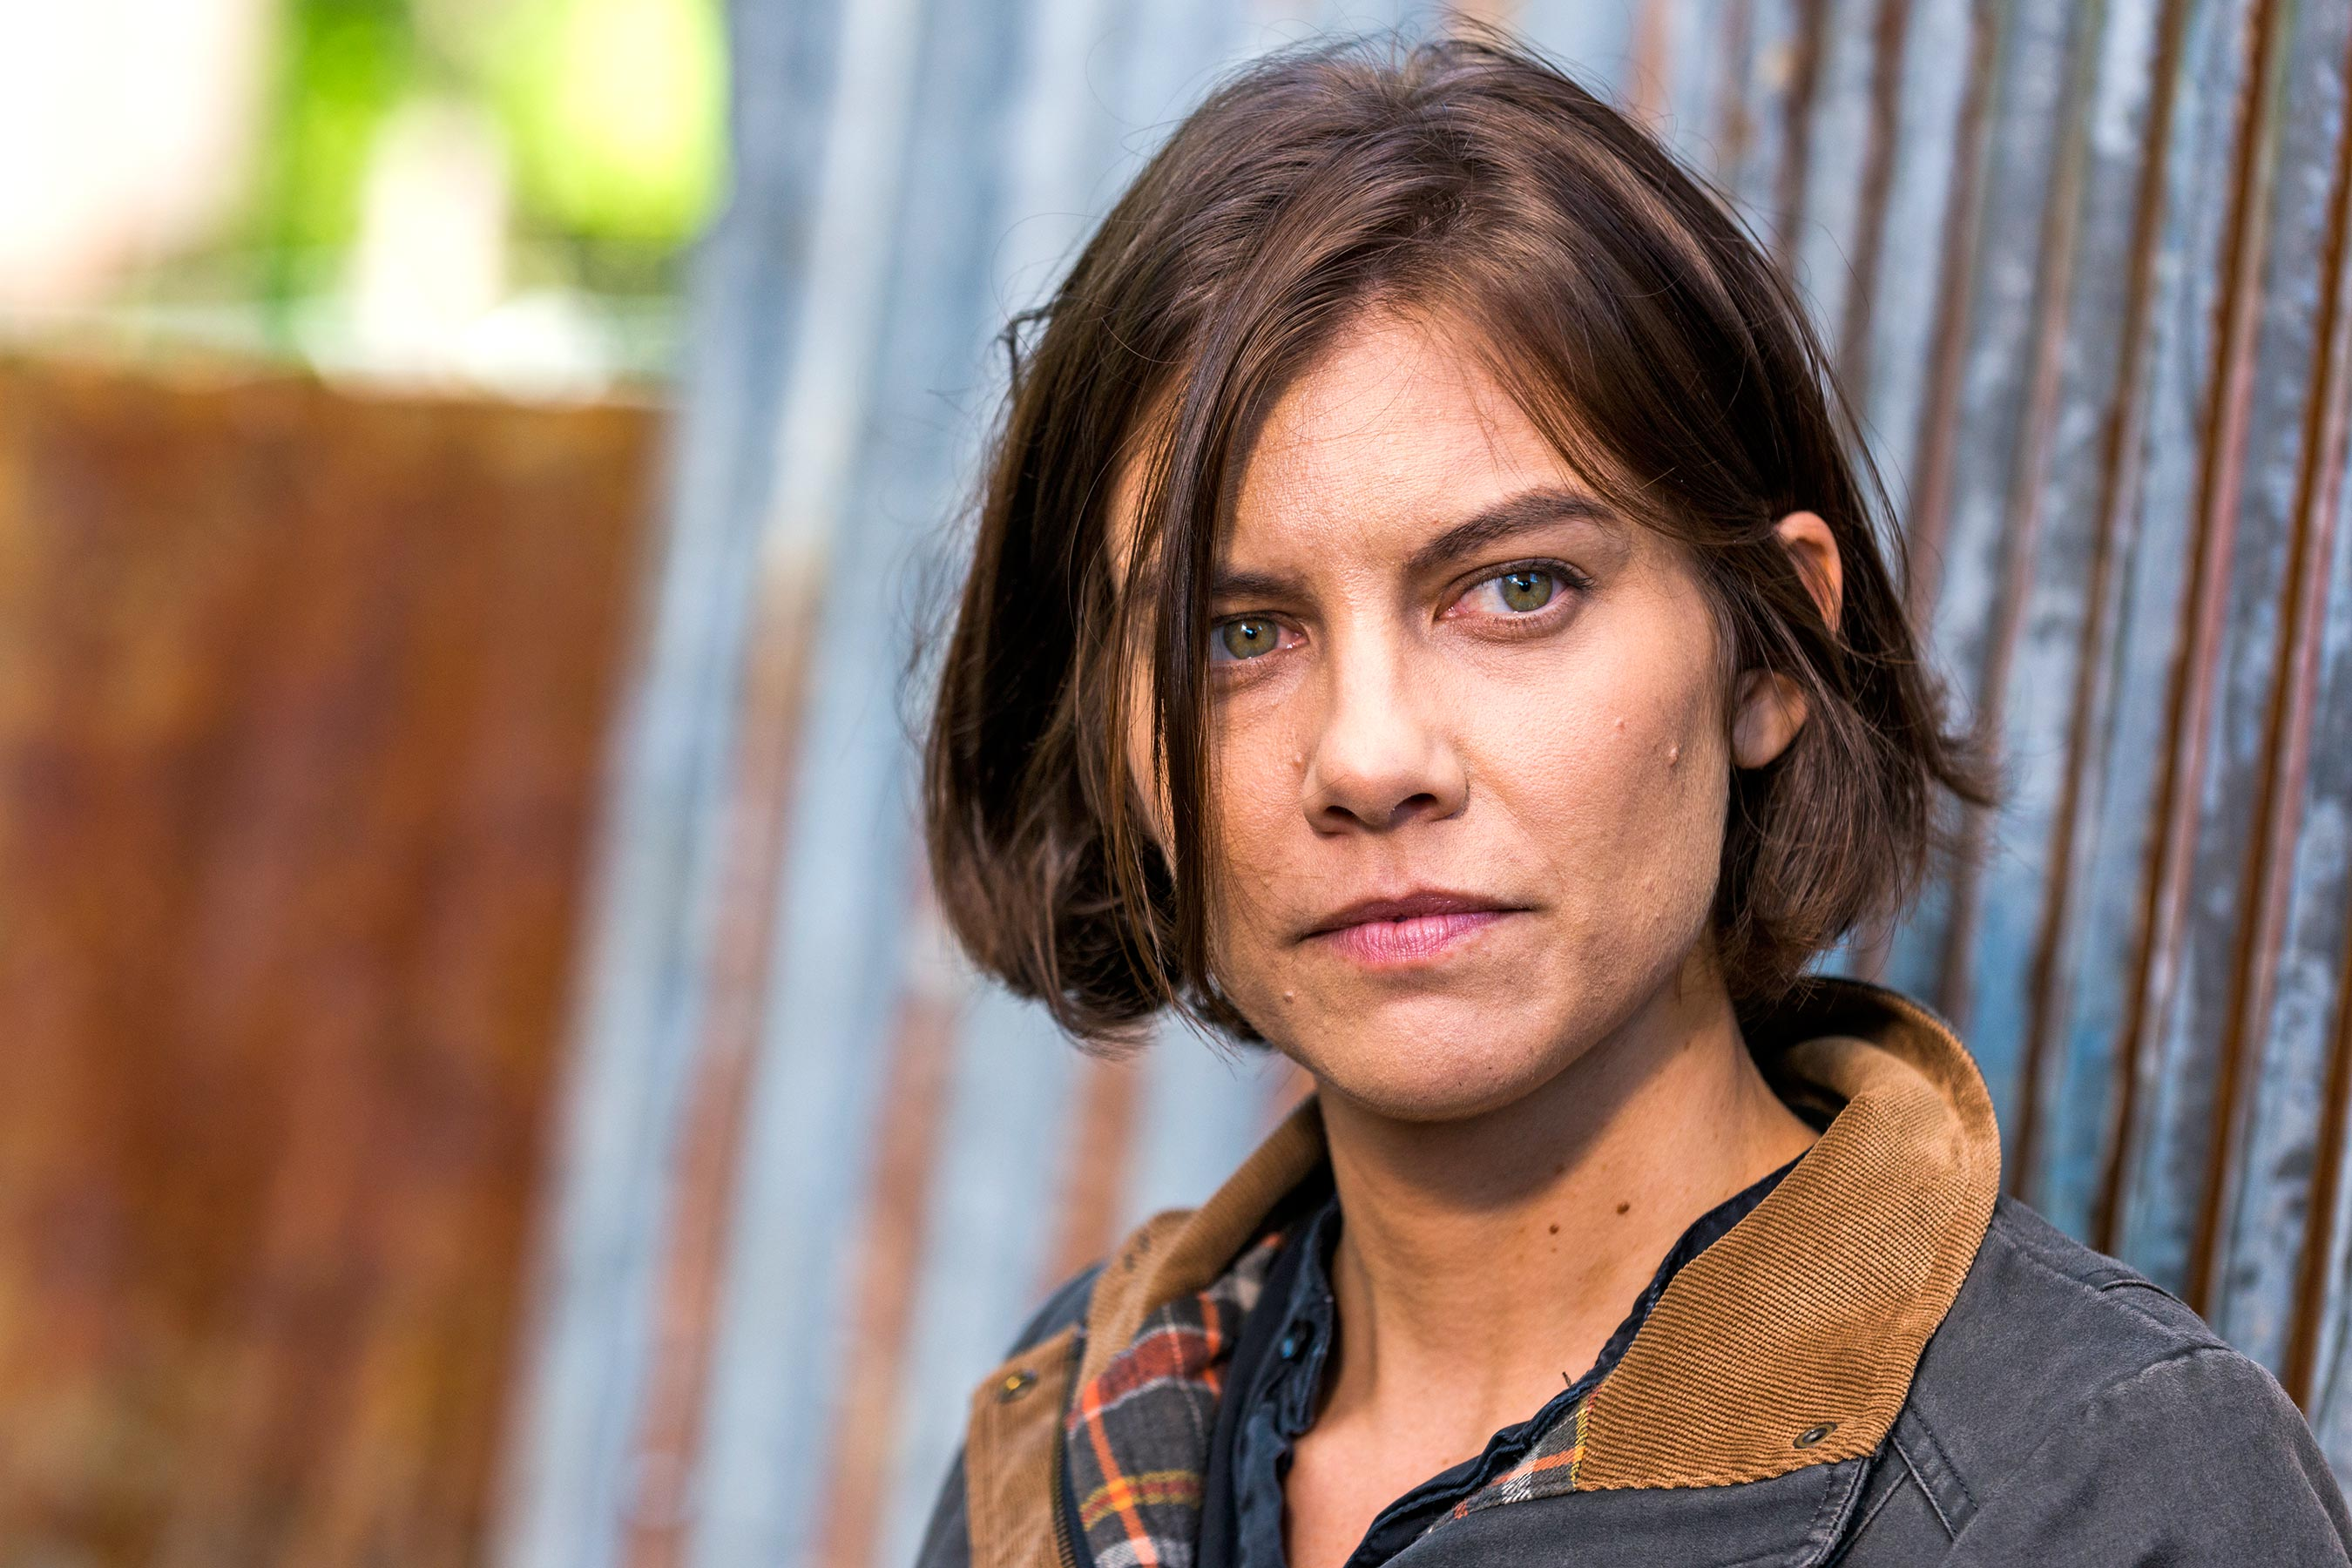 Head shot image of Lauren Cohan